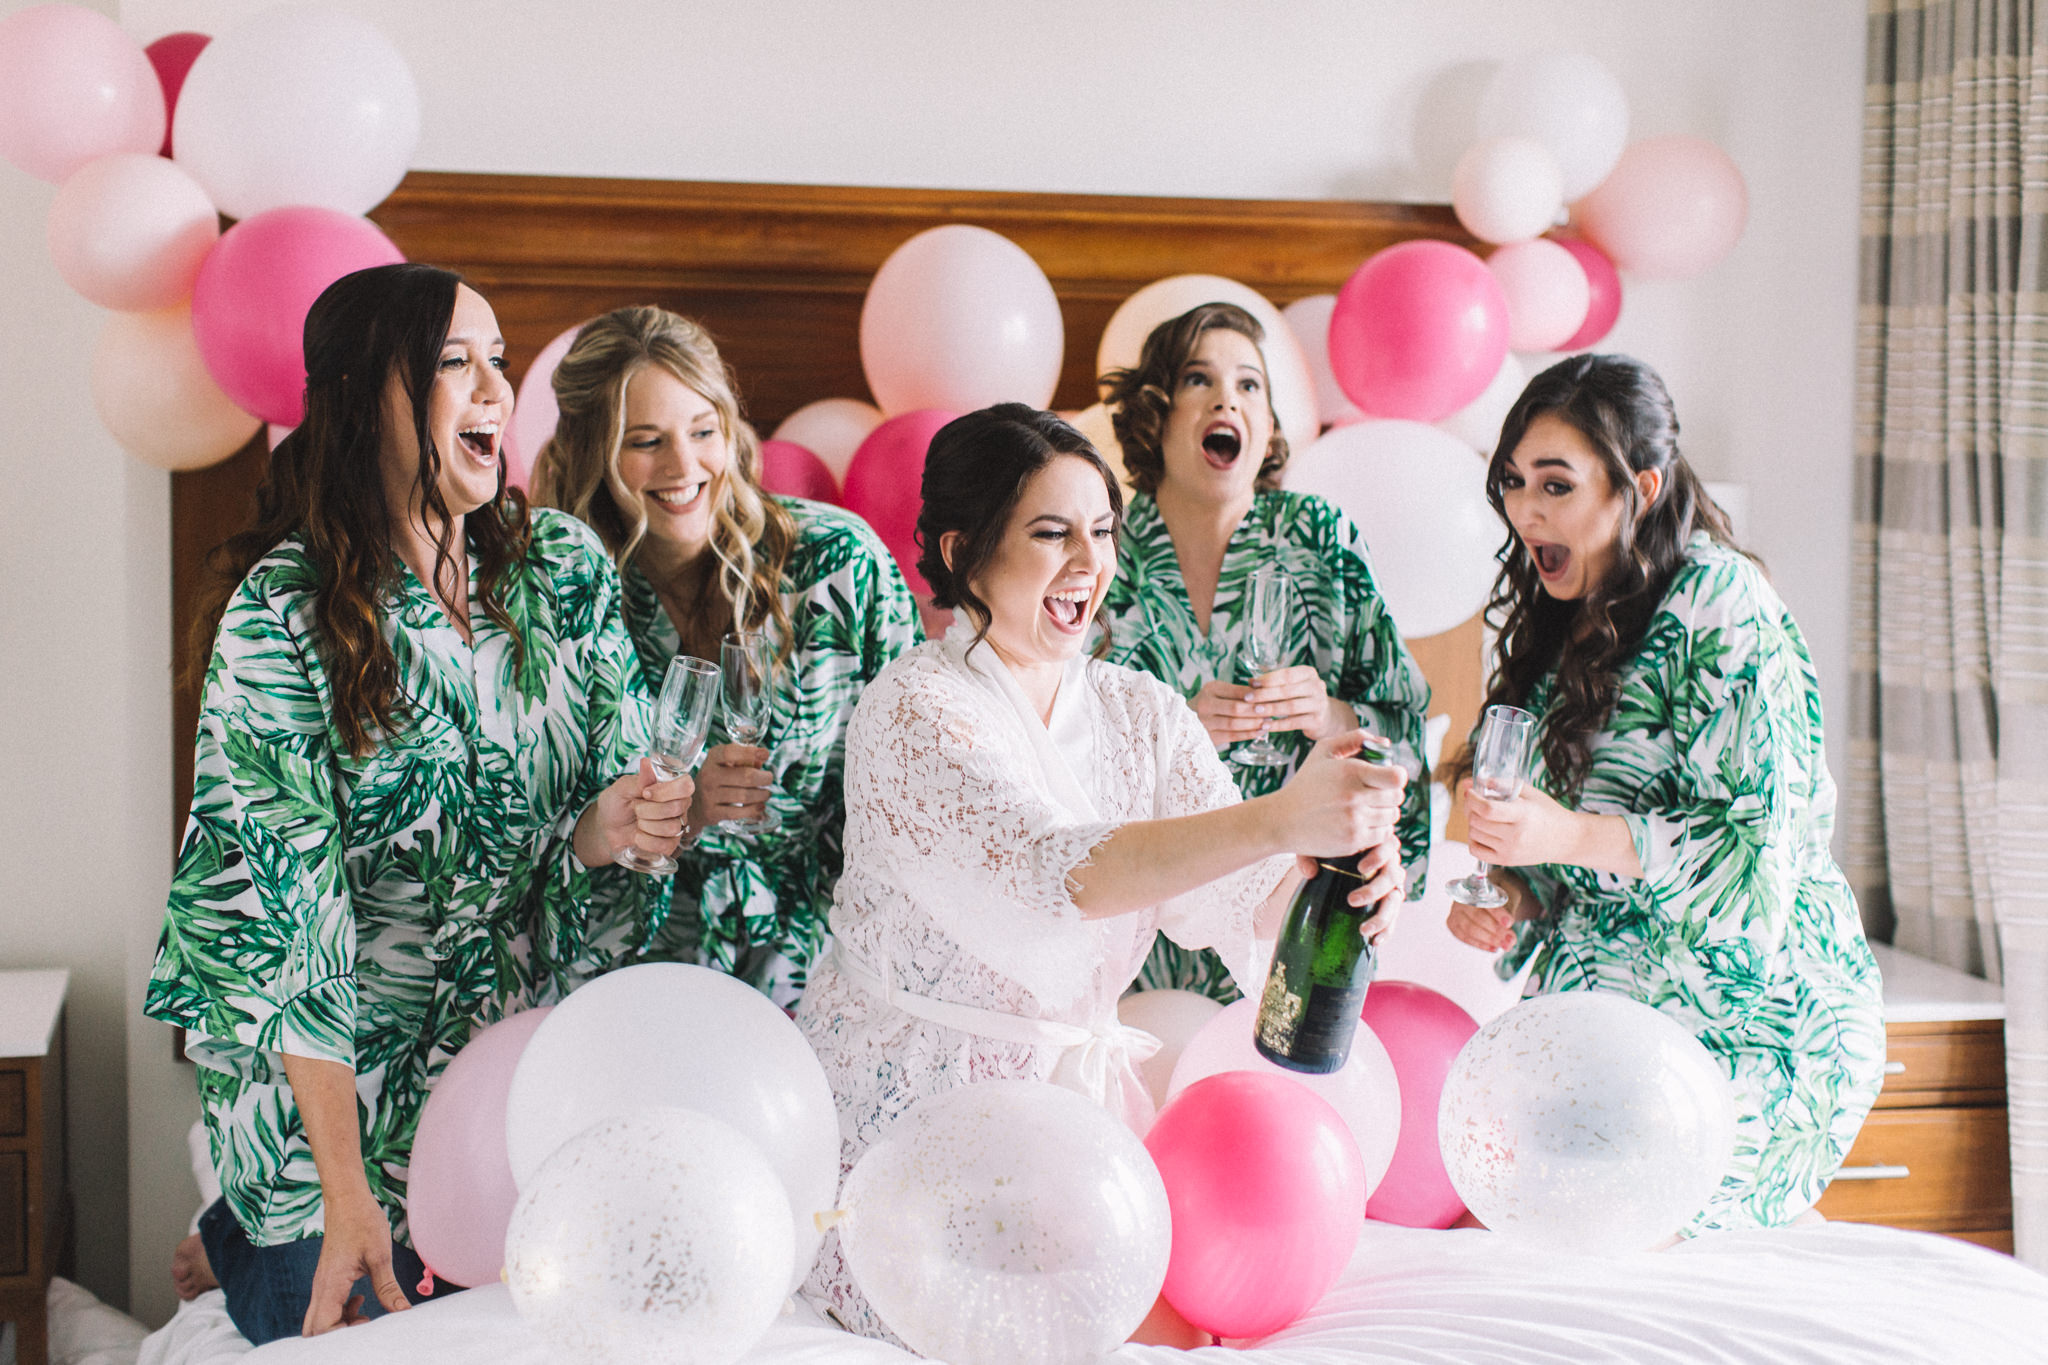 bridesmaids pop champagne on bed photo